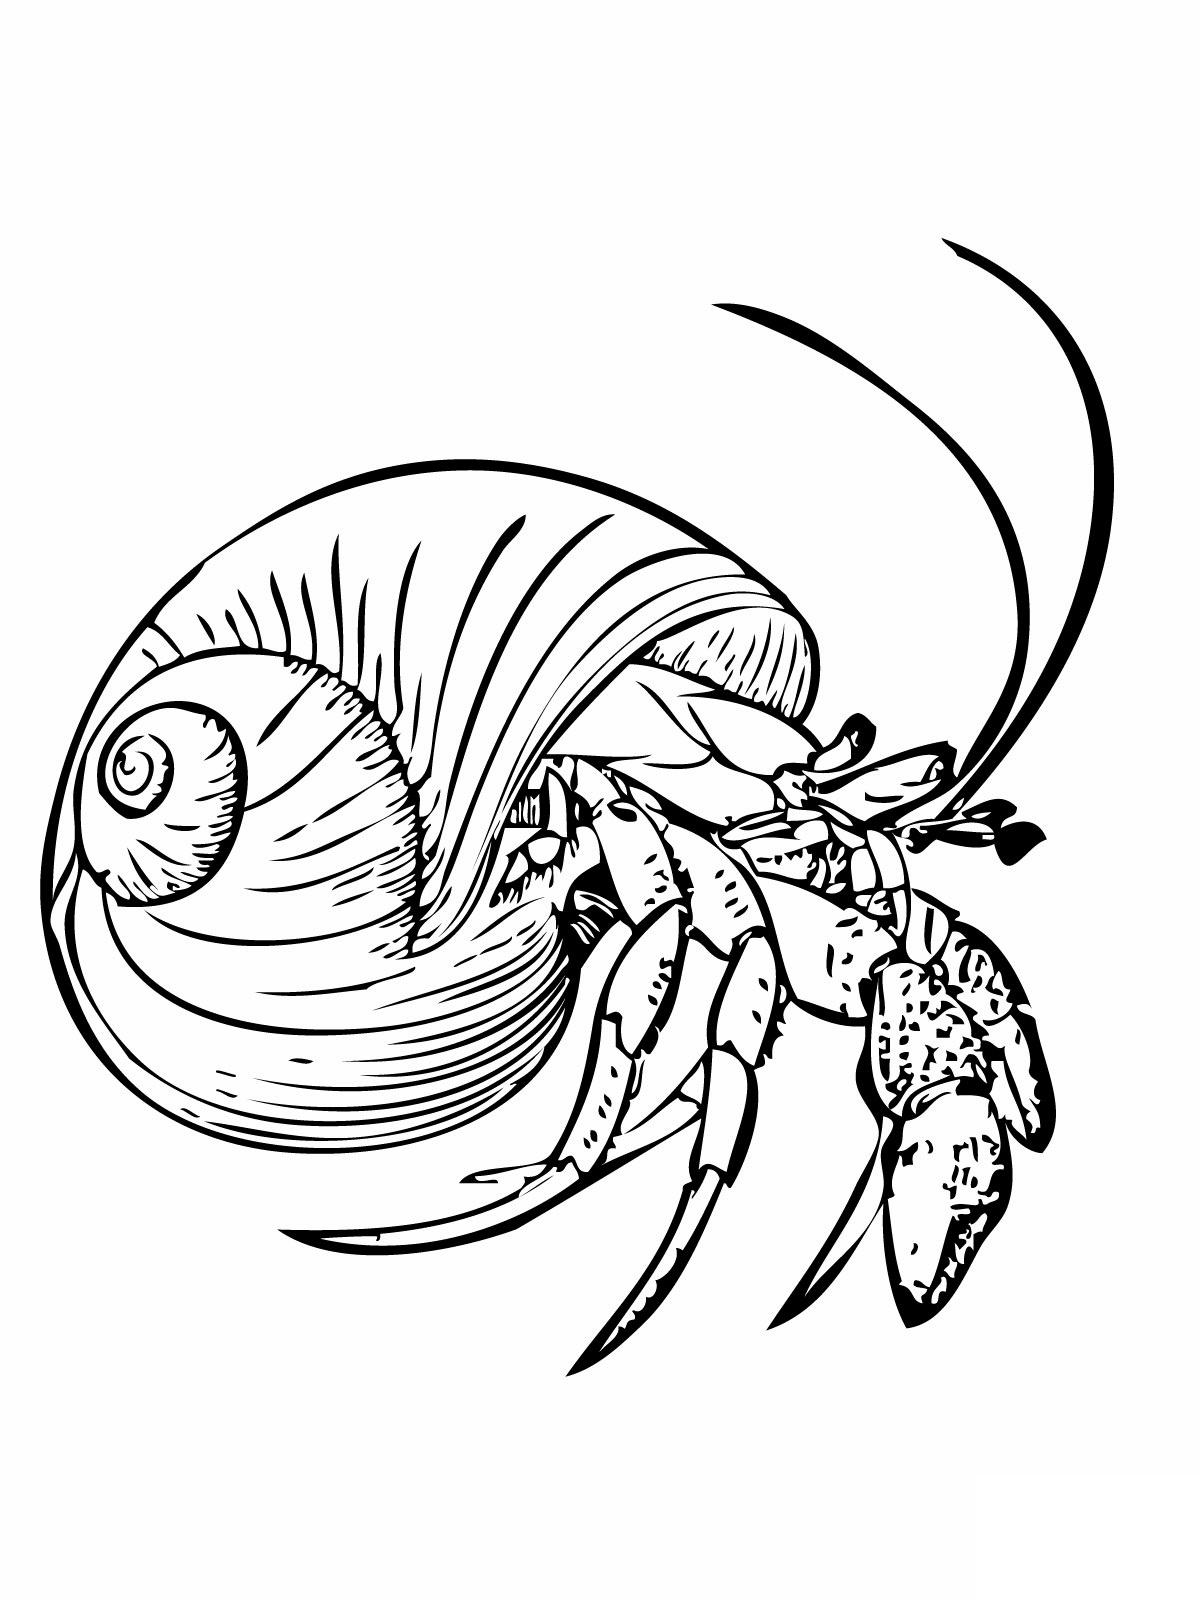 crab coloring sheet printable crab coloring pages for kids cool2bkids coloring crab sheet